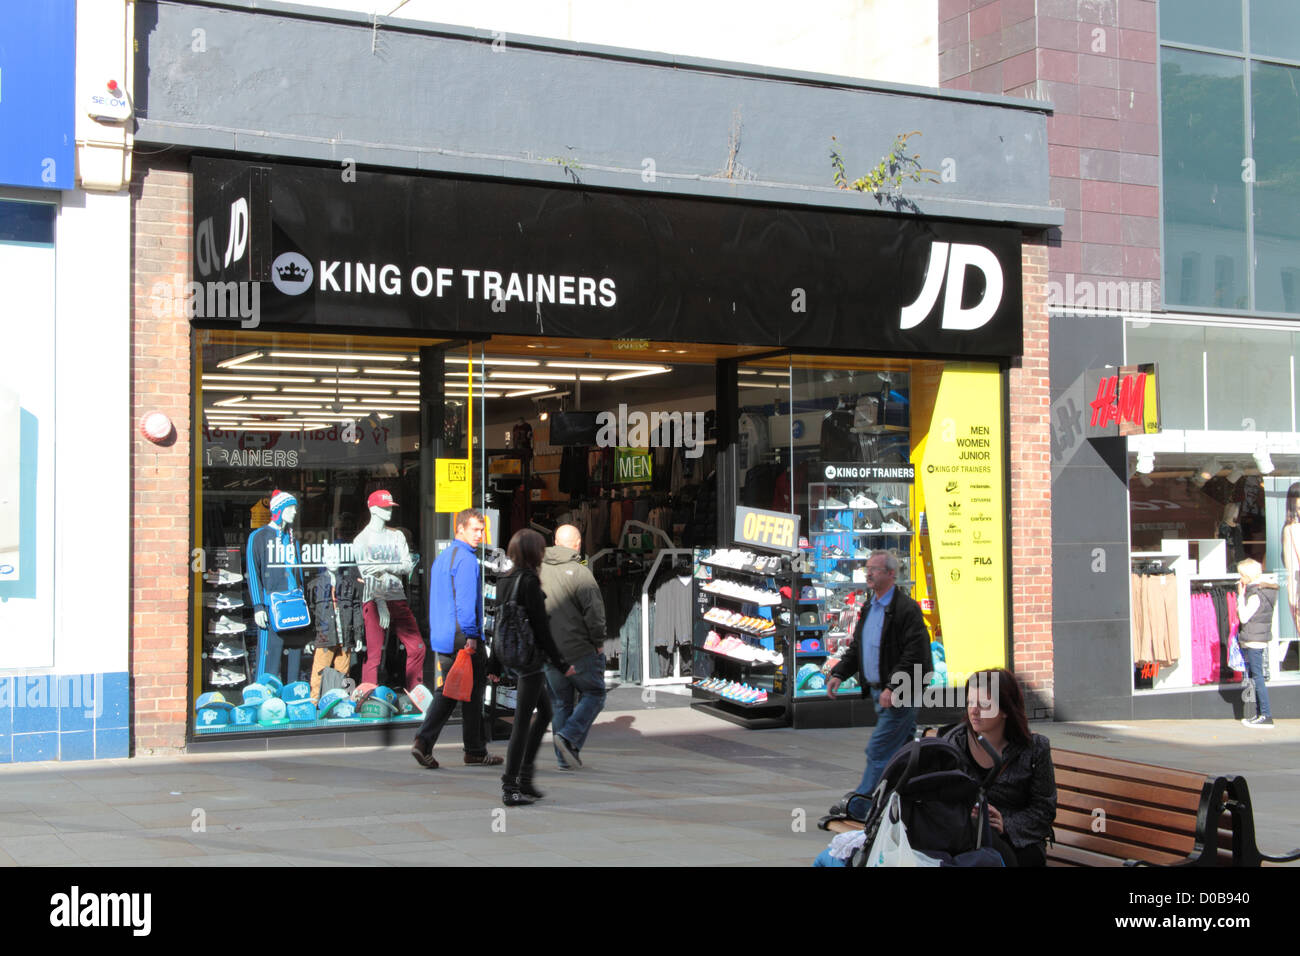 Jd Sports J D Sports Stock Photos J D Sports Stock Images Alamy